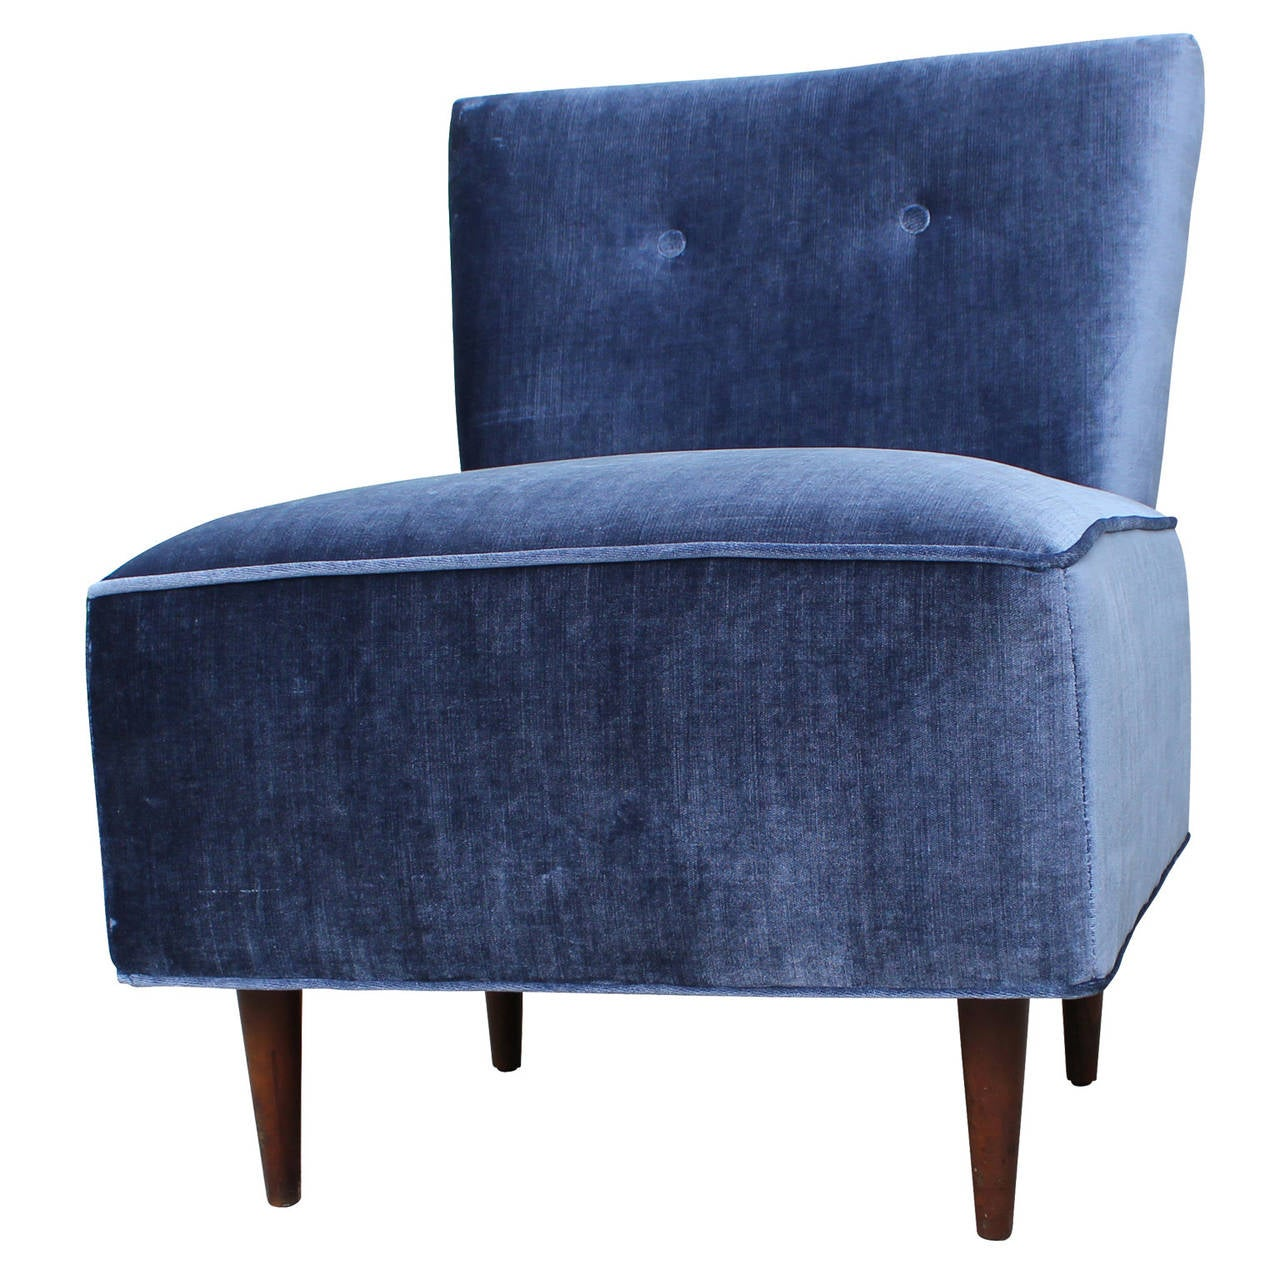 Ordinaire Fantastic Blue Velvet Slipper Chair In Excellent Condition For Sale In  Houston, TX